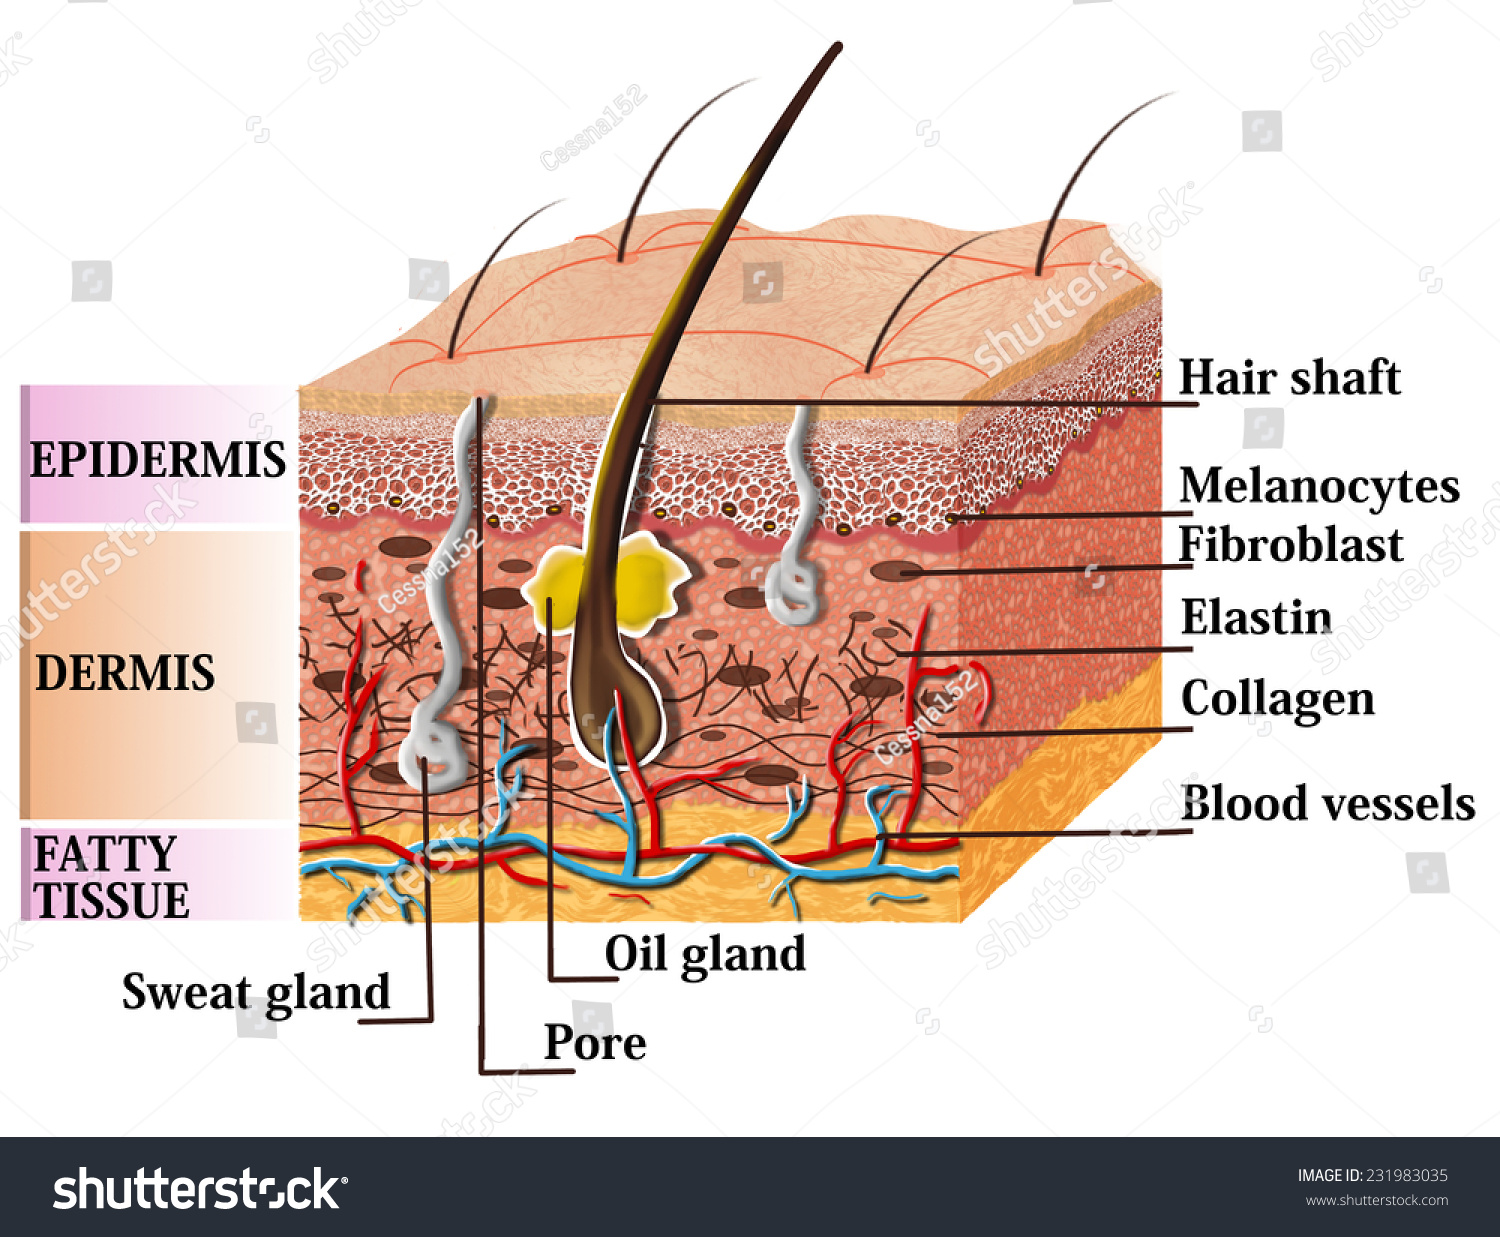 Skin Anatomy Diagram Description Illustration Skin Stock